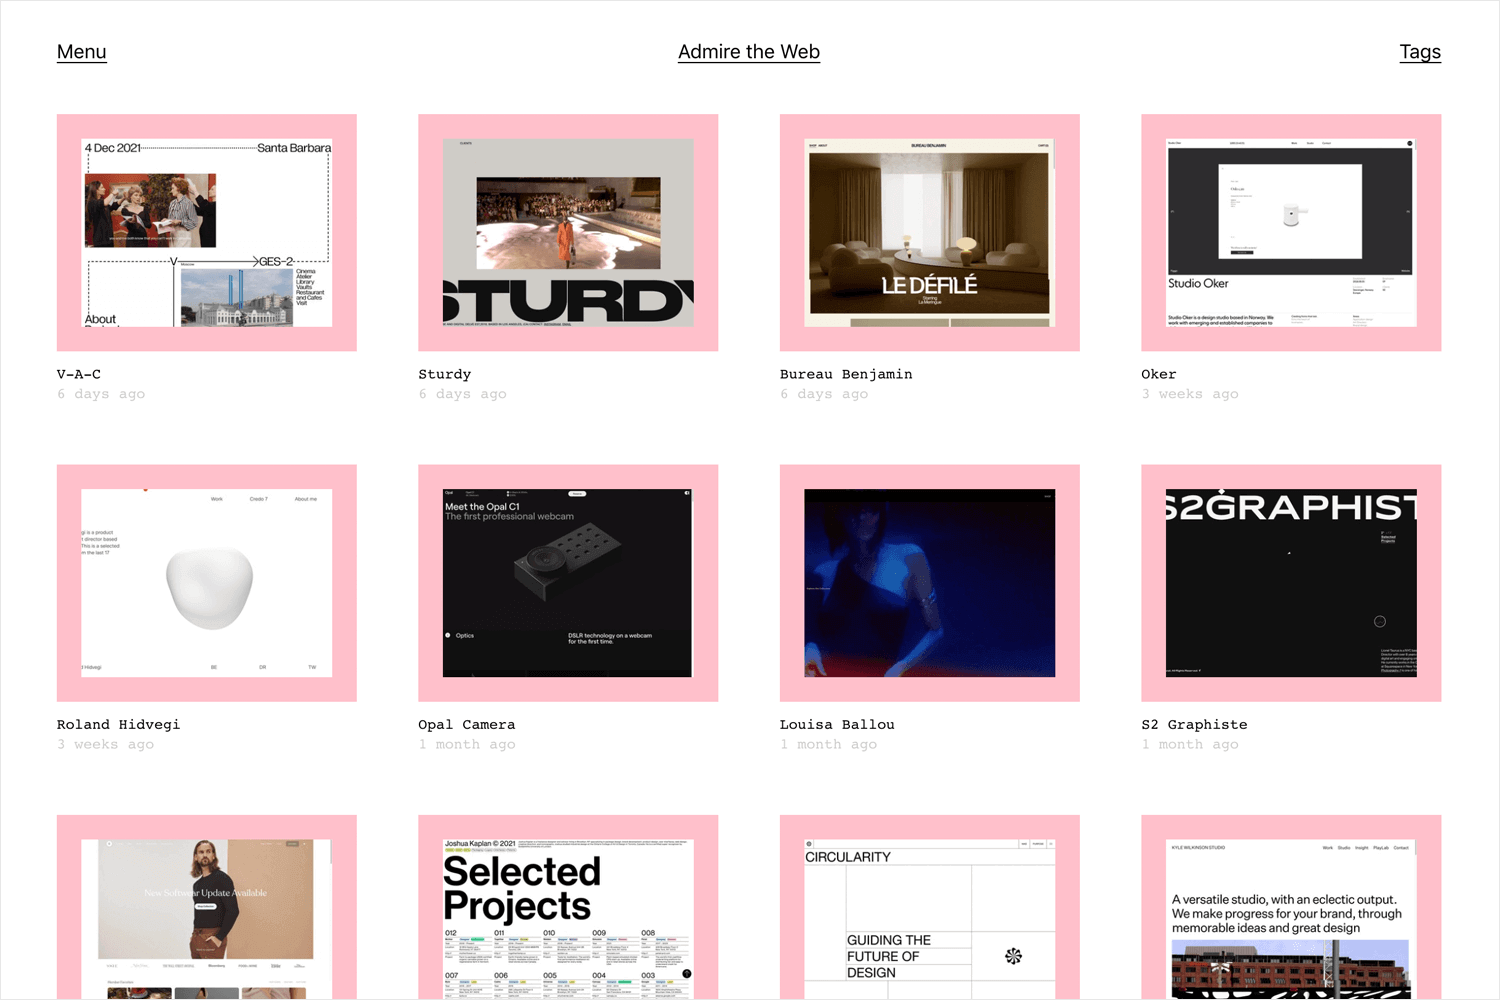 admire the web as place for web design inspiration